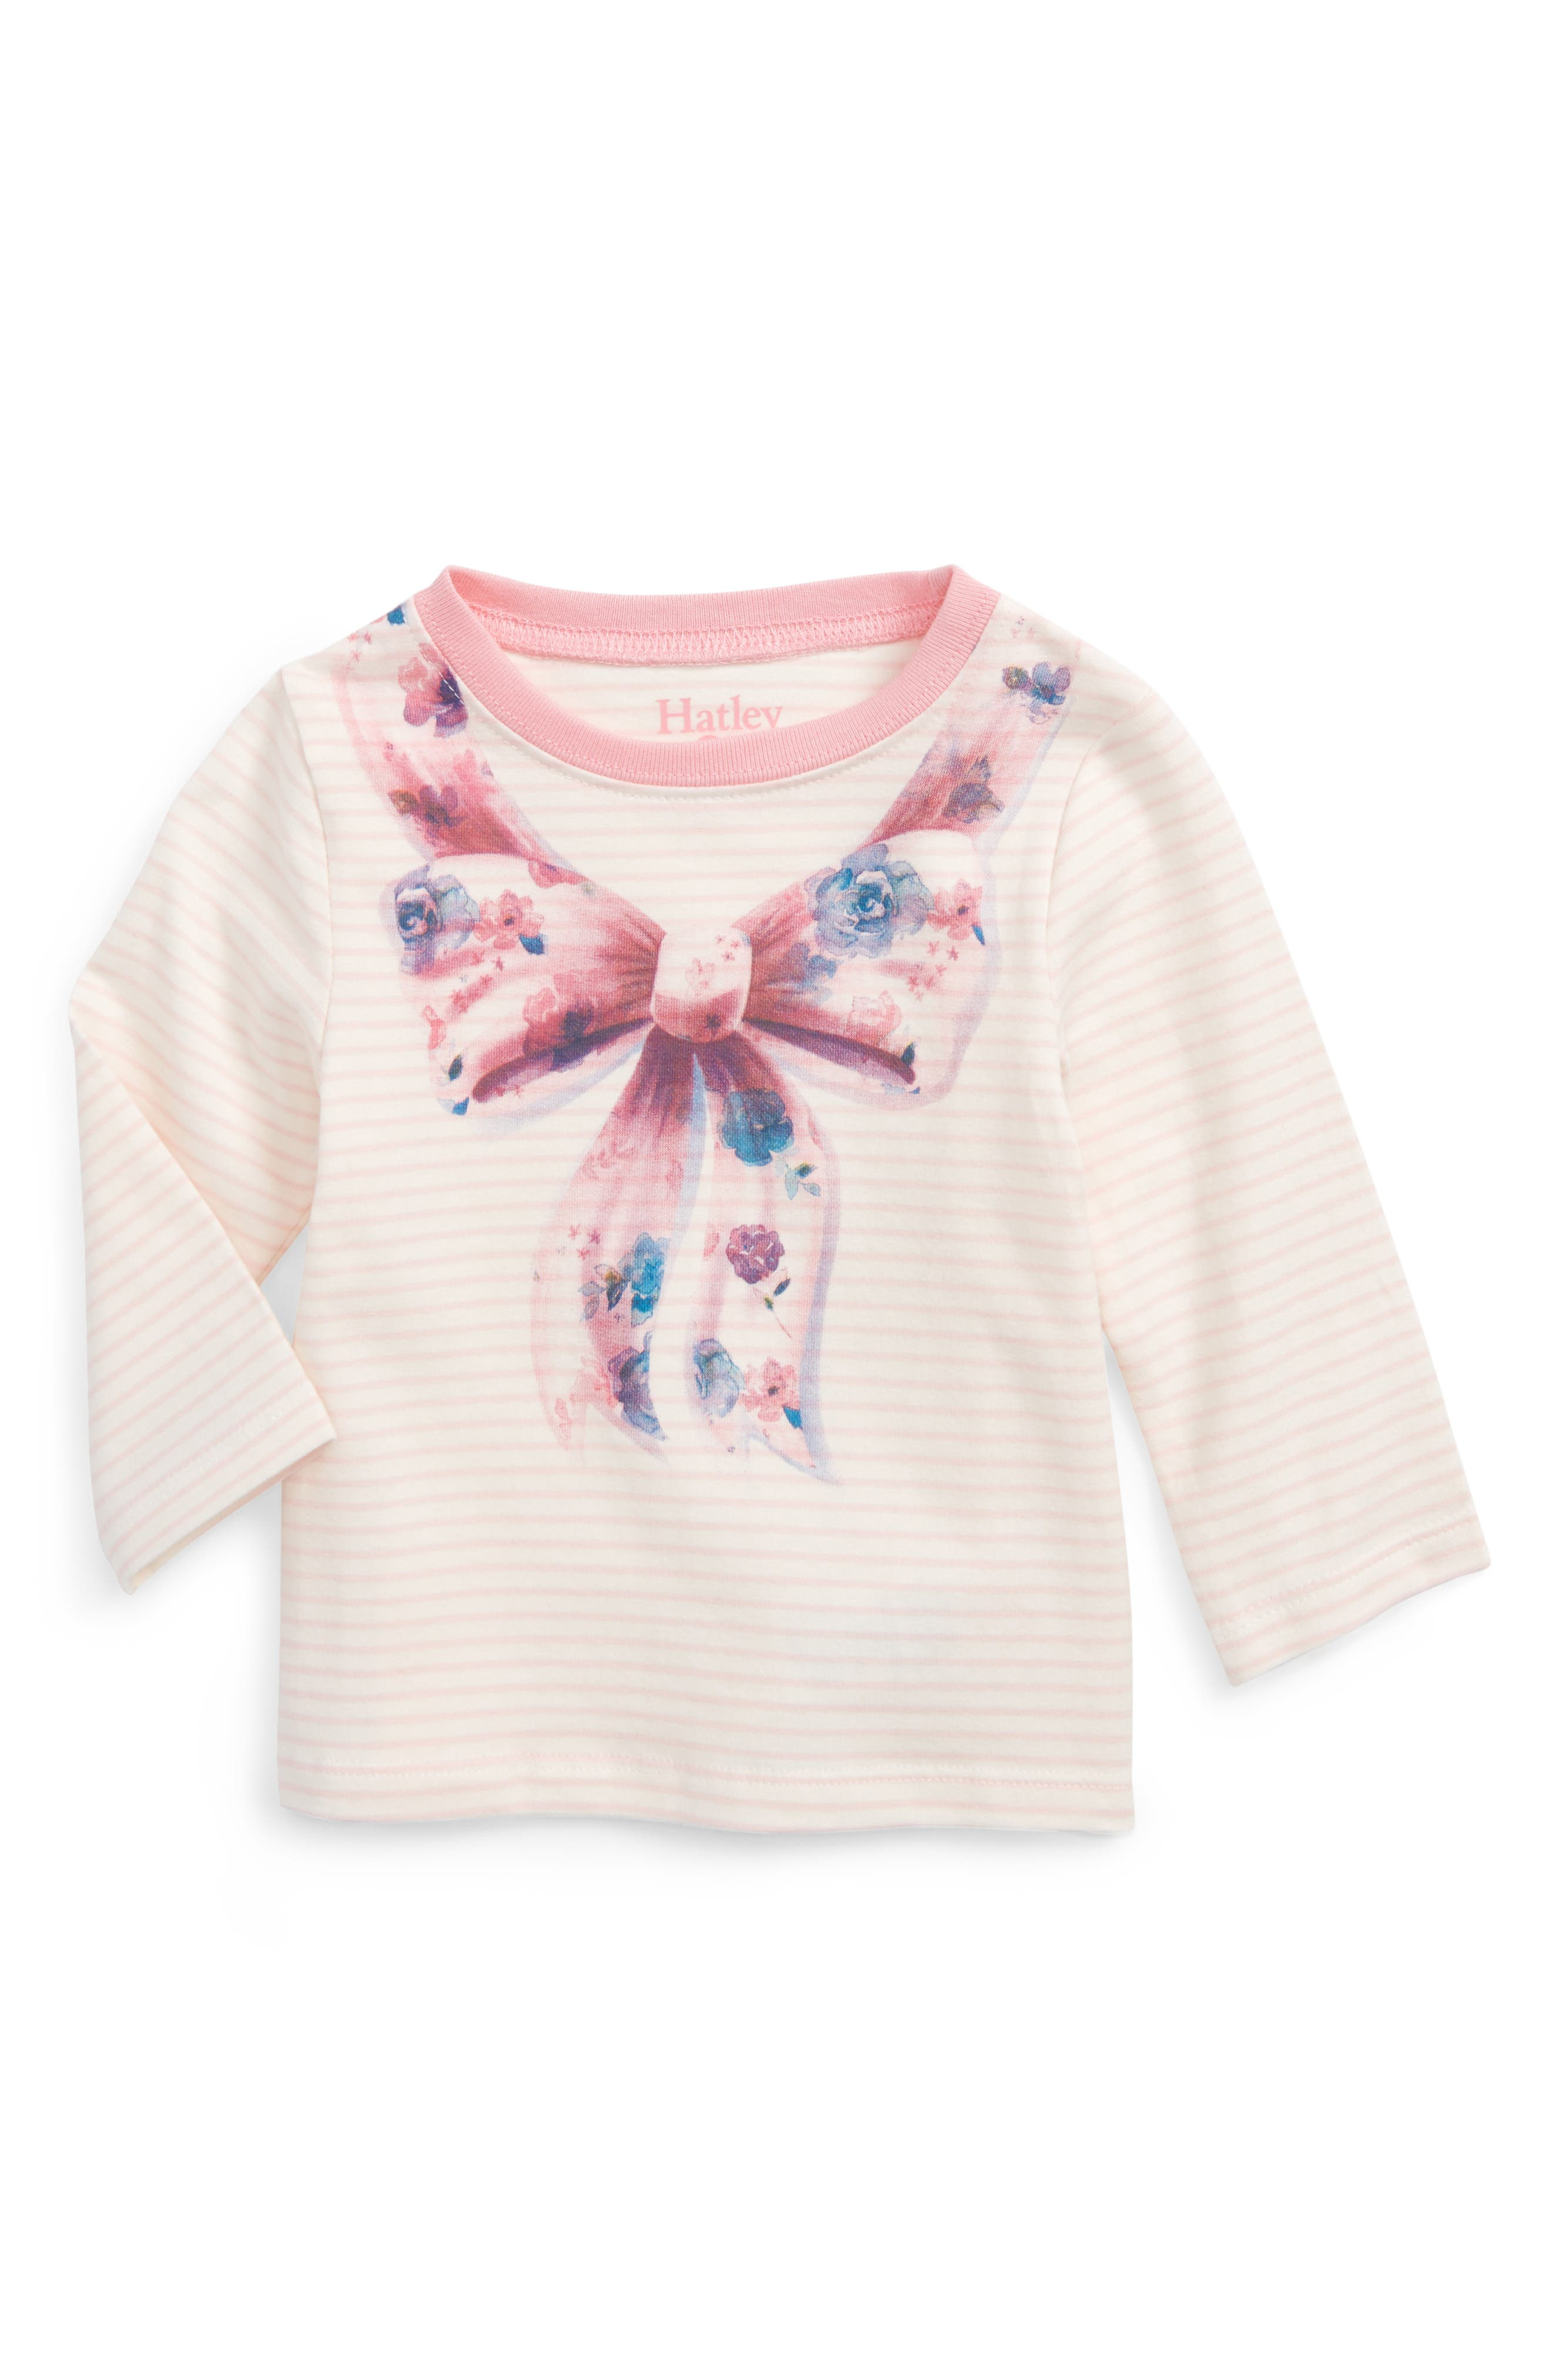 Hatley Graphic Long Sleeve Tee (Baby Girls)